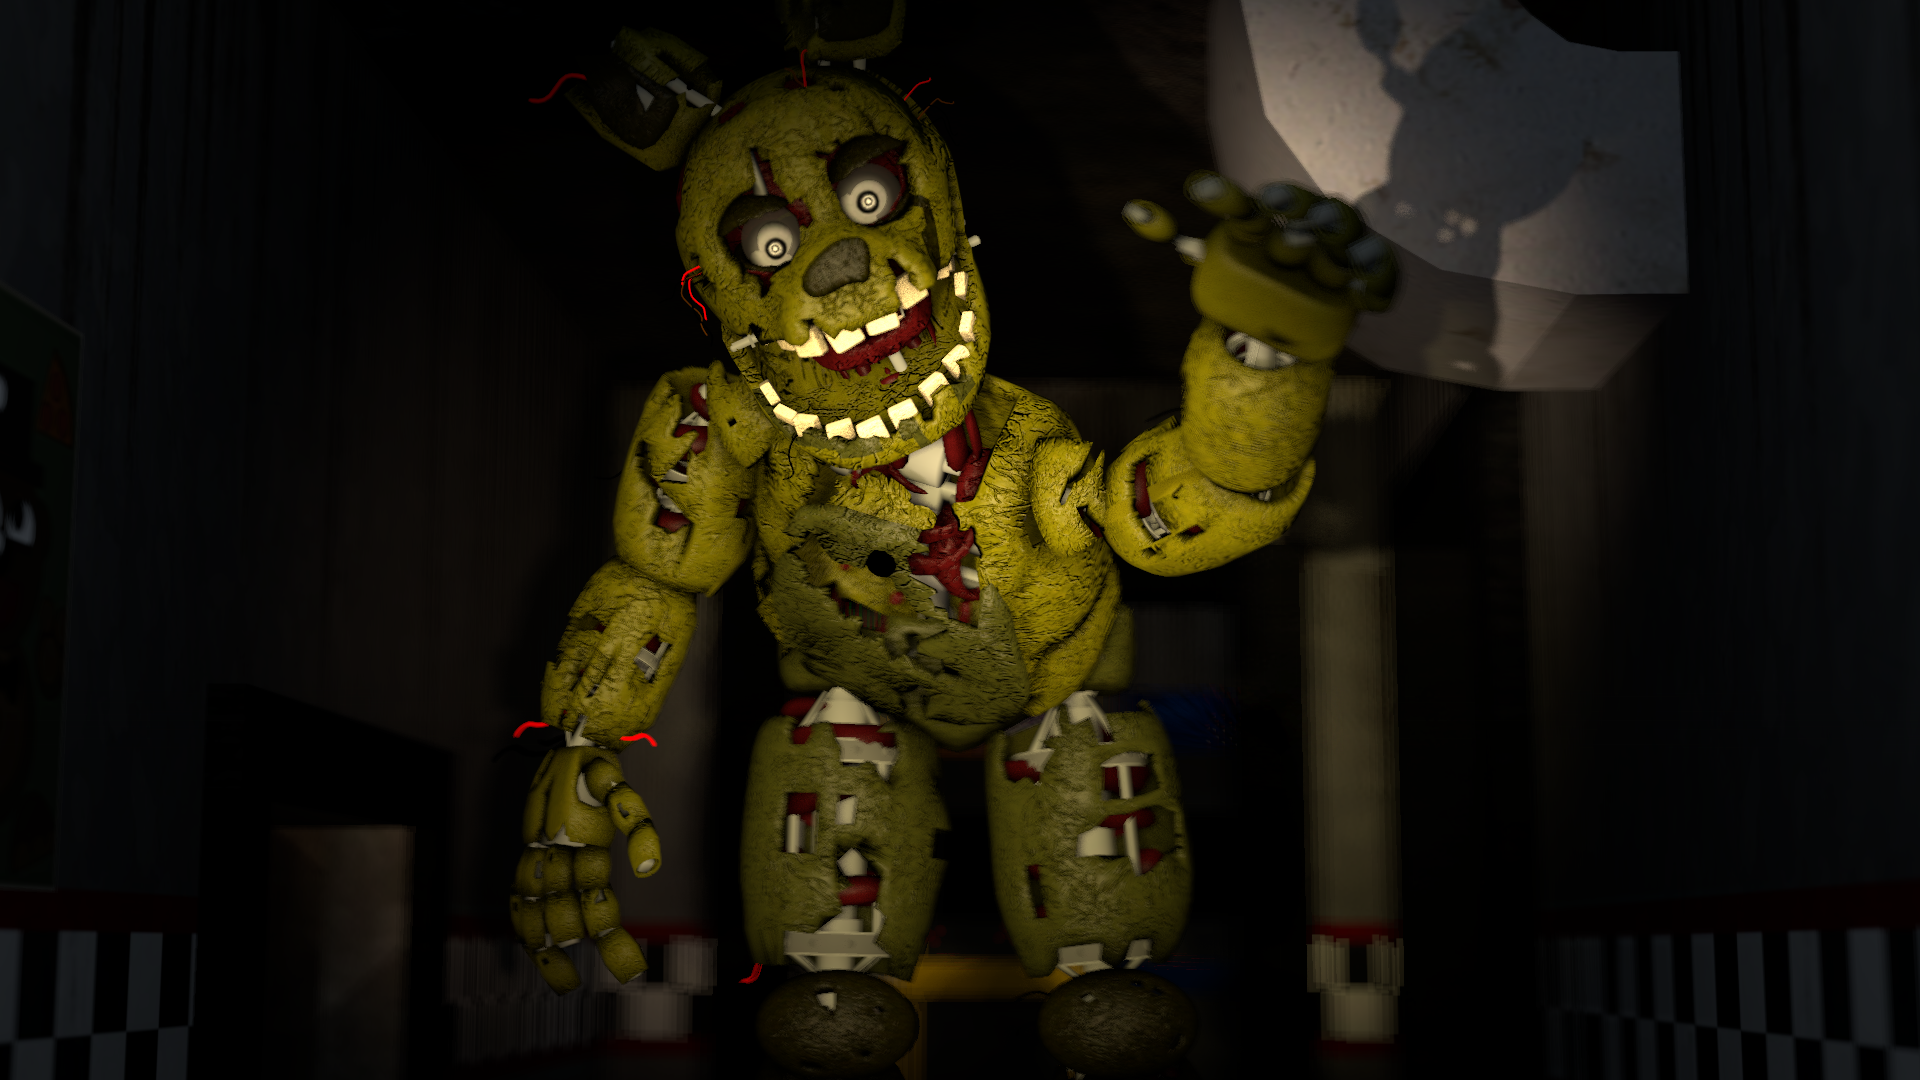 Spring trap images - Fotos trap ...